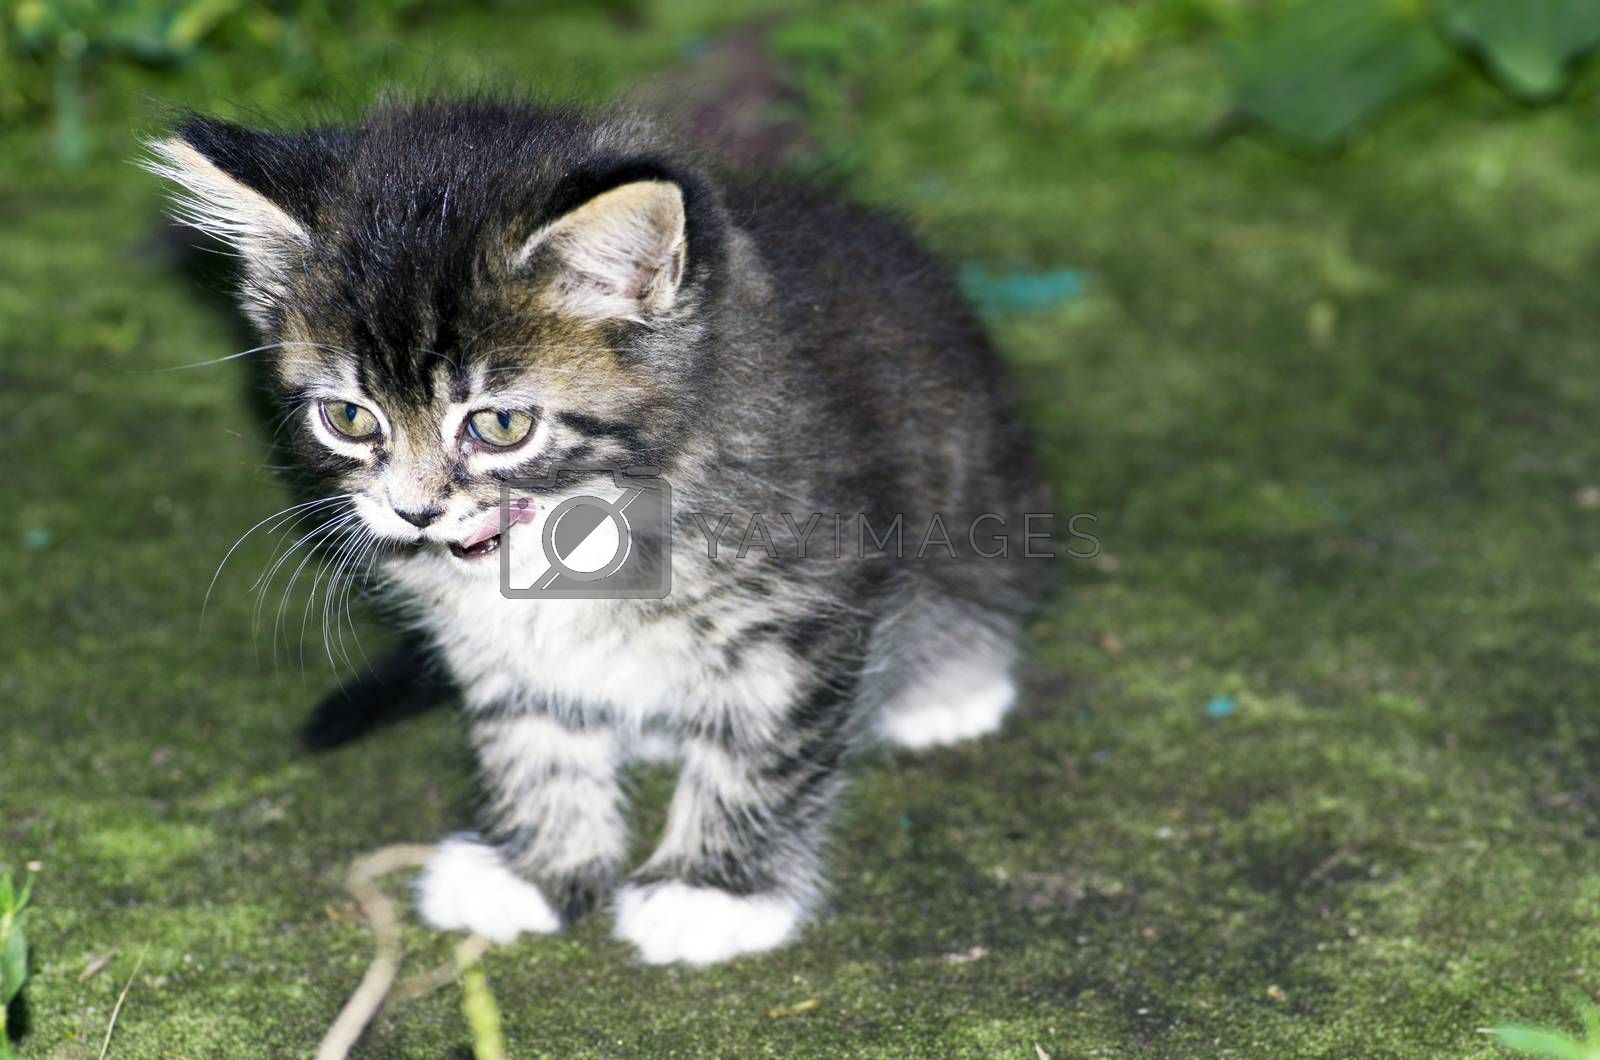 Royalty free image of top view of baby cat kitten lying  by dolnikow